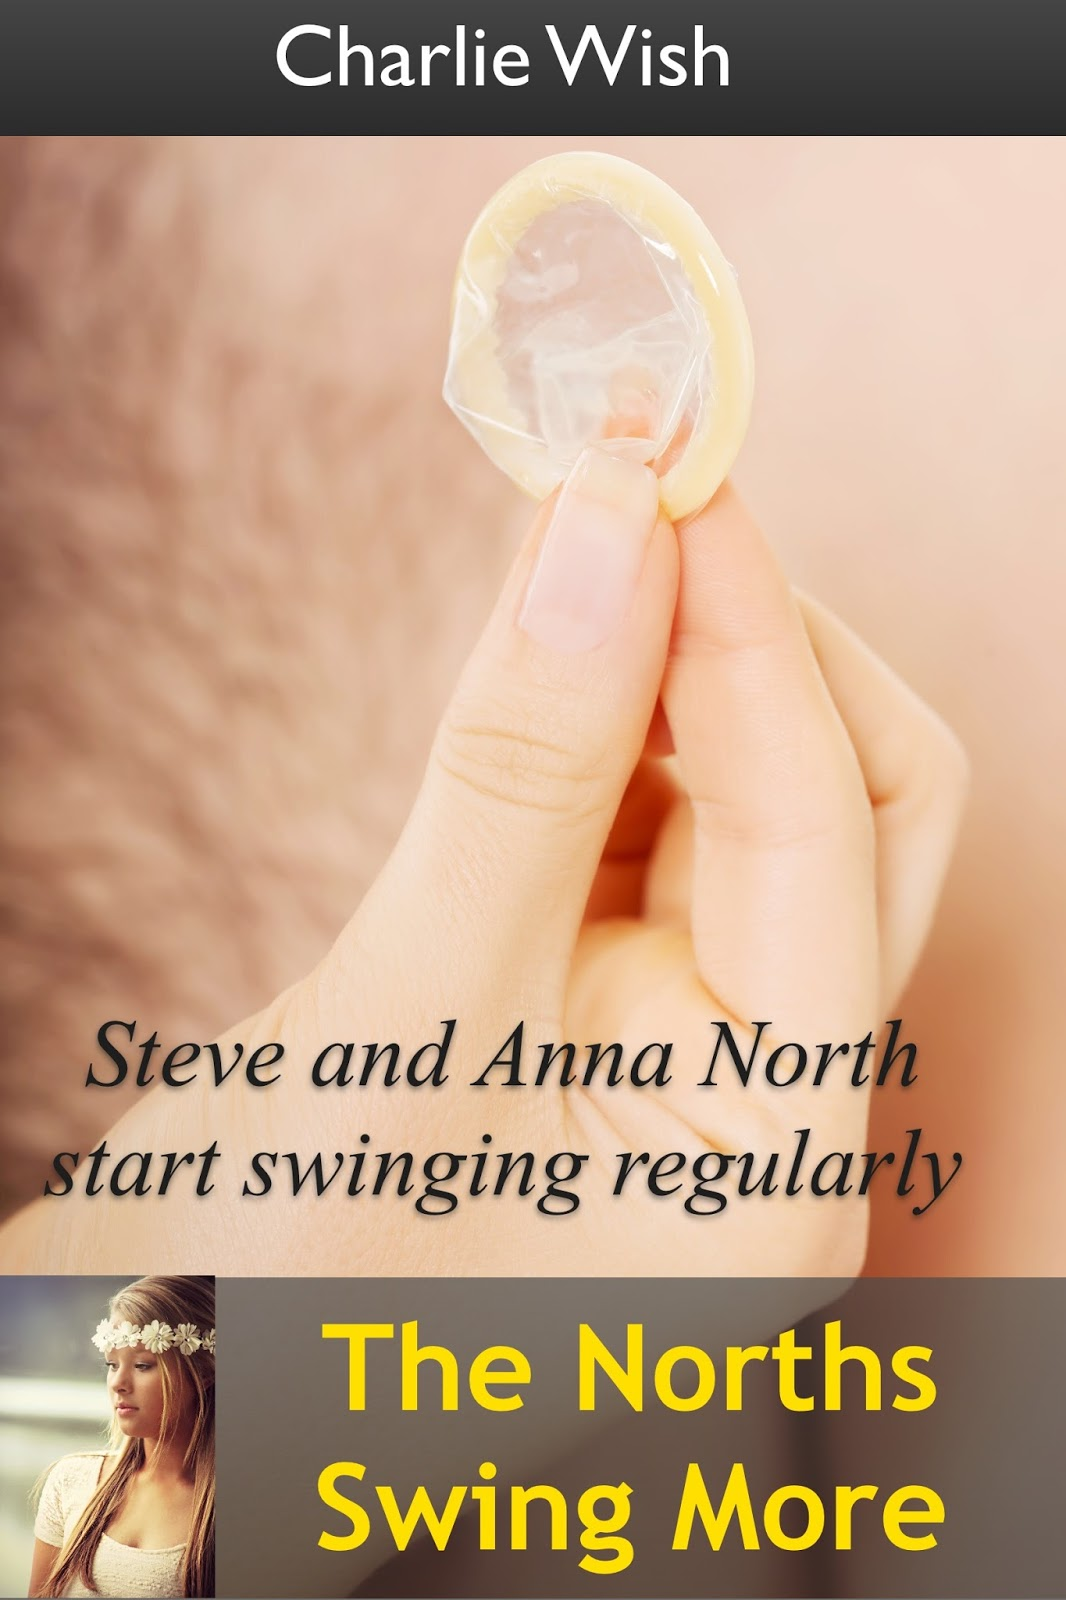 Steve and Anna North start swinging regularly